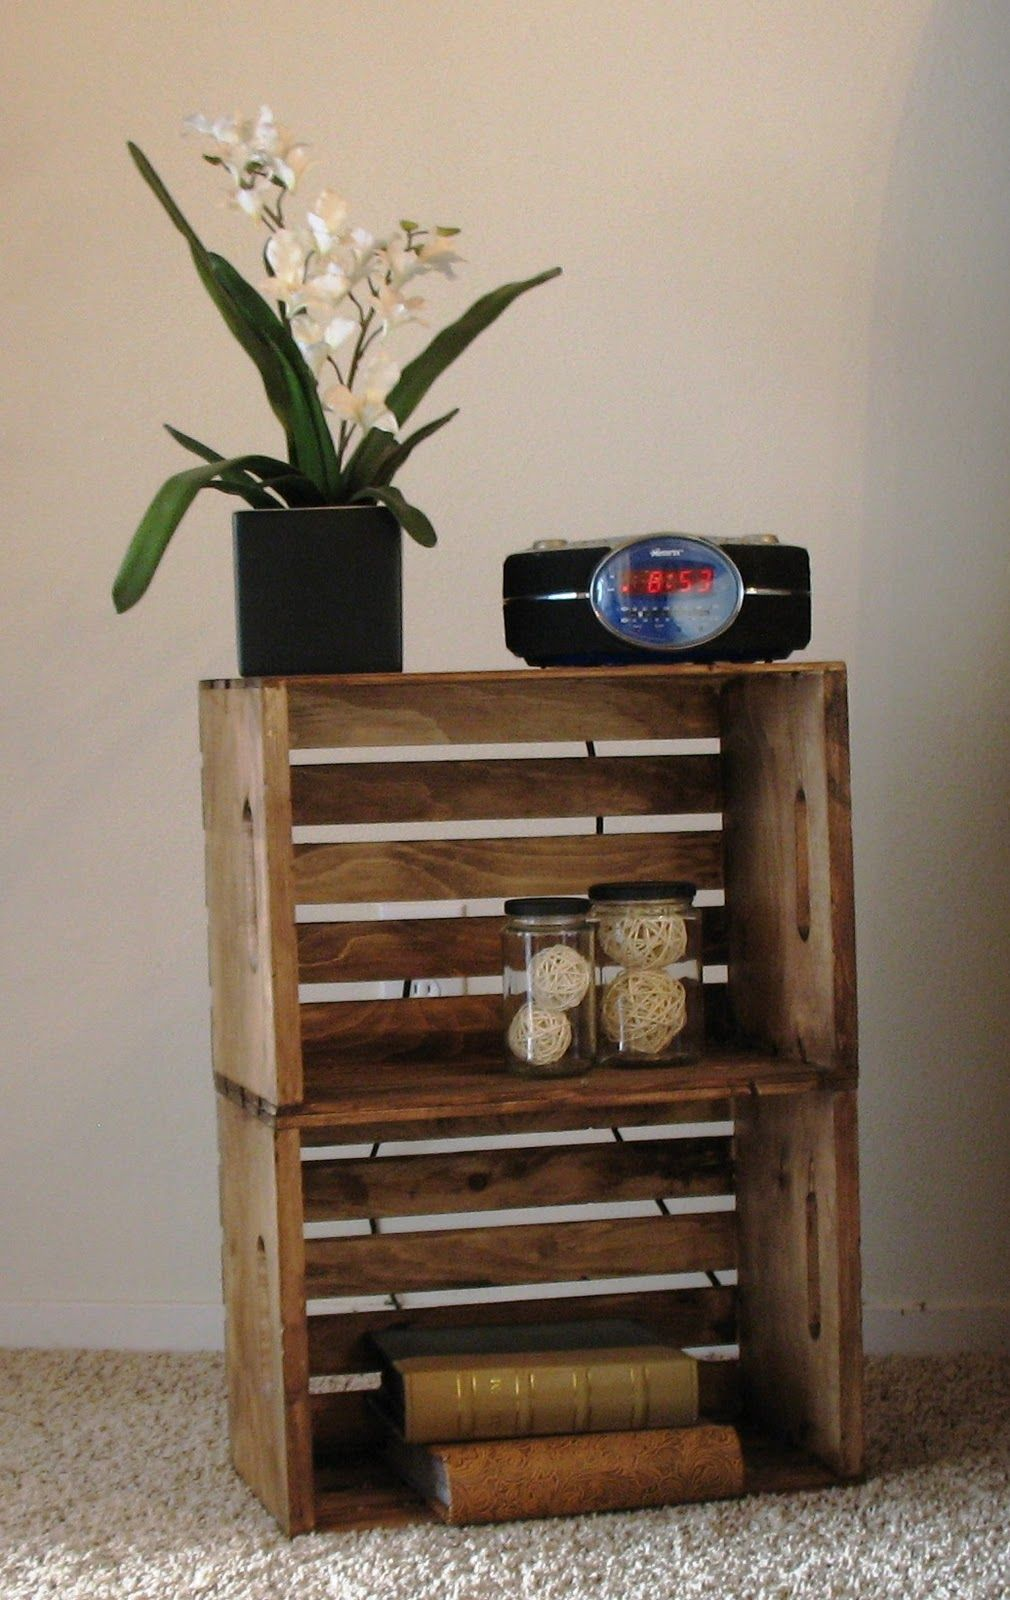 Diy Nightstand Ideas Crate Side Table Diy Nightstand Wooden Crates Nightstand